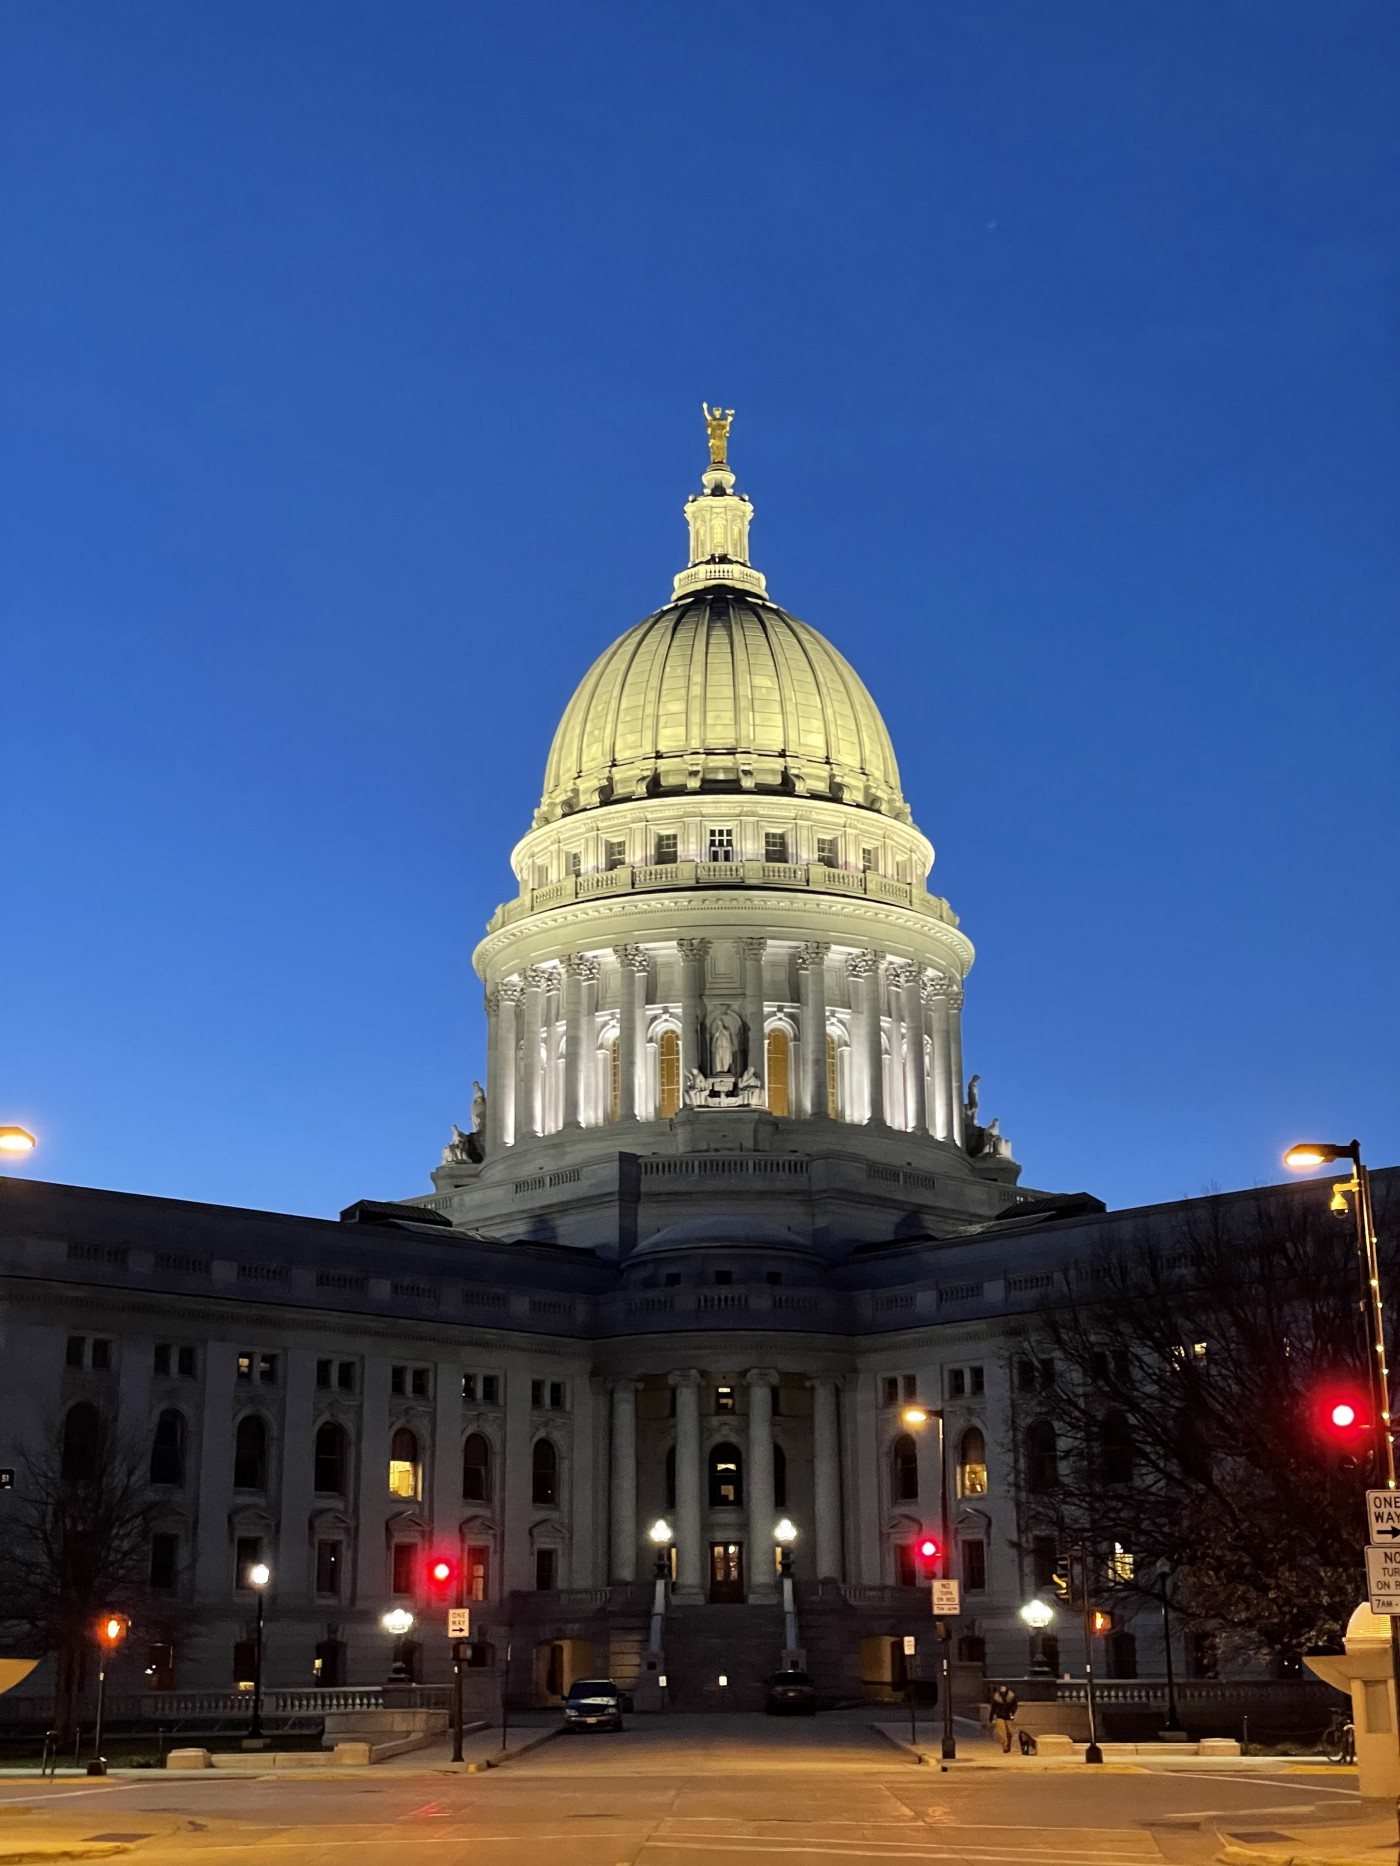 The Wisconsin state capital at night.